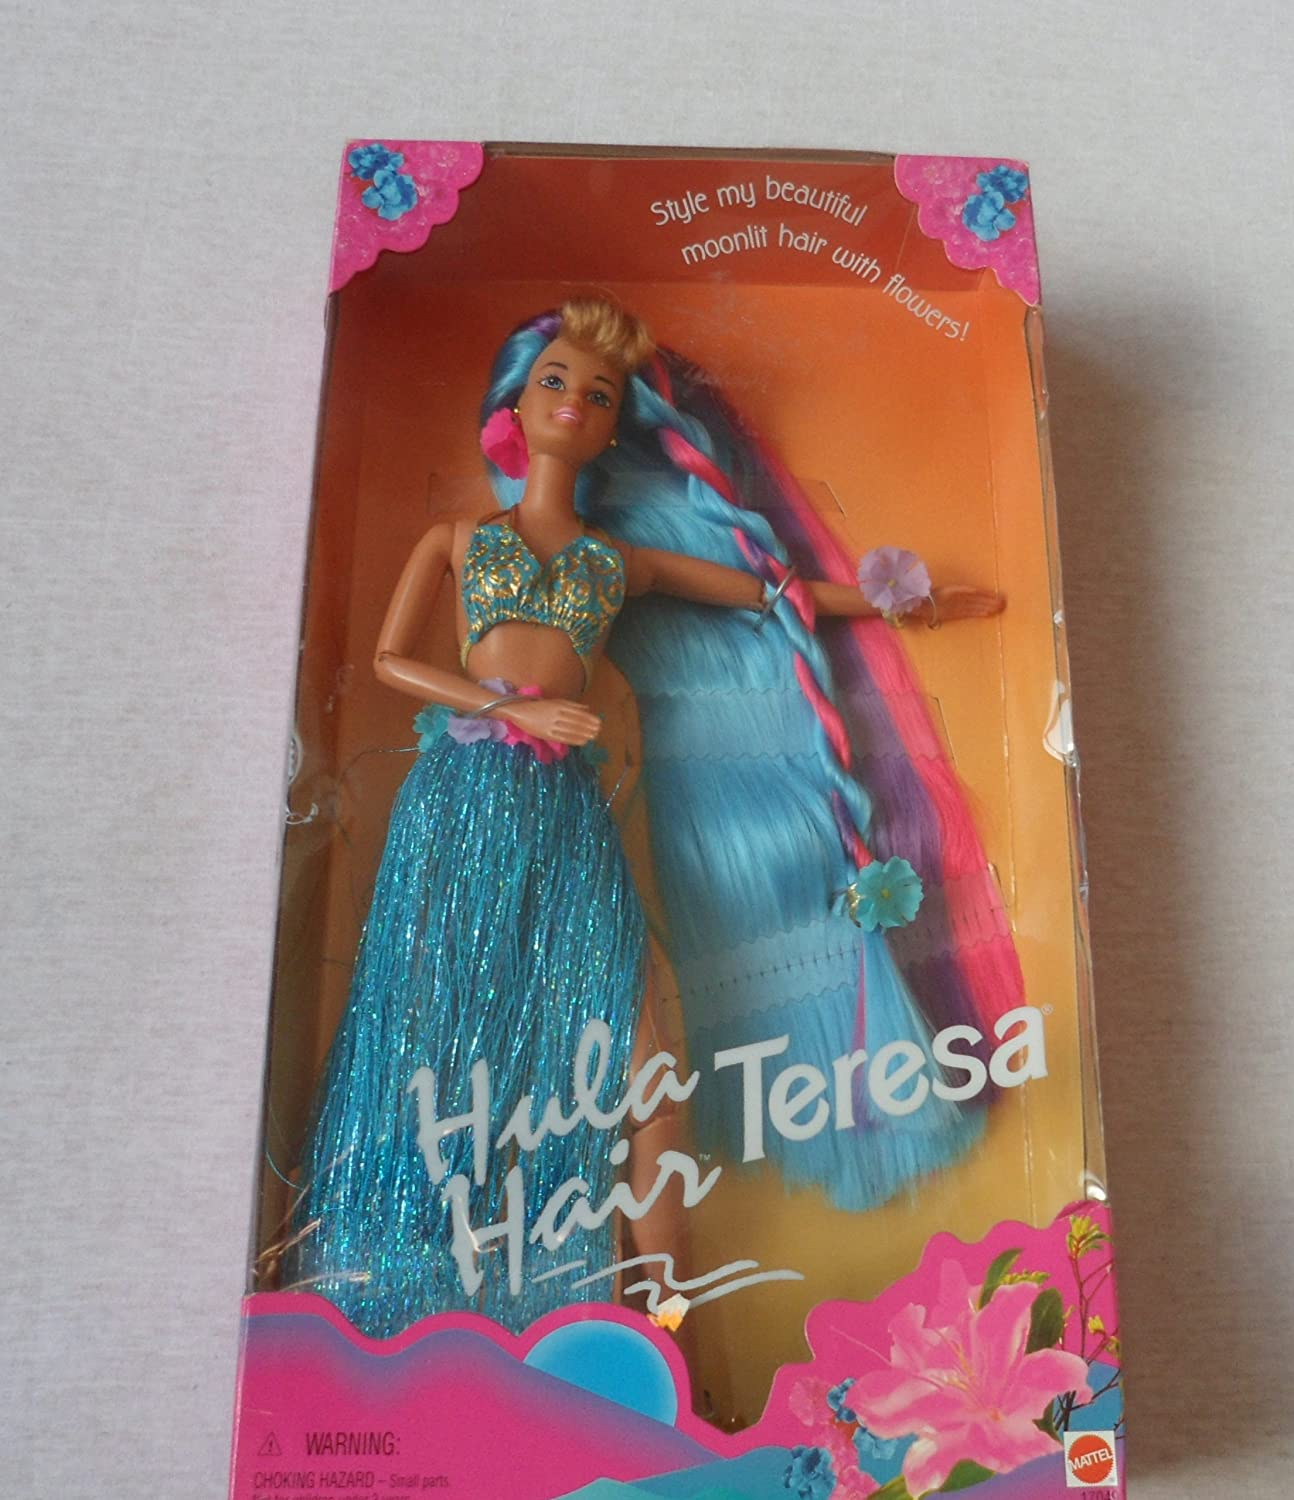 Hula Hair Barbie (Teresa)1996 günstig